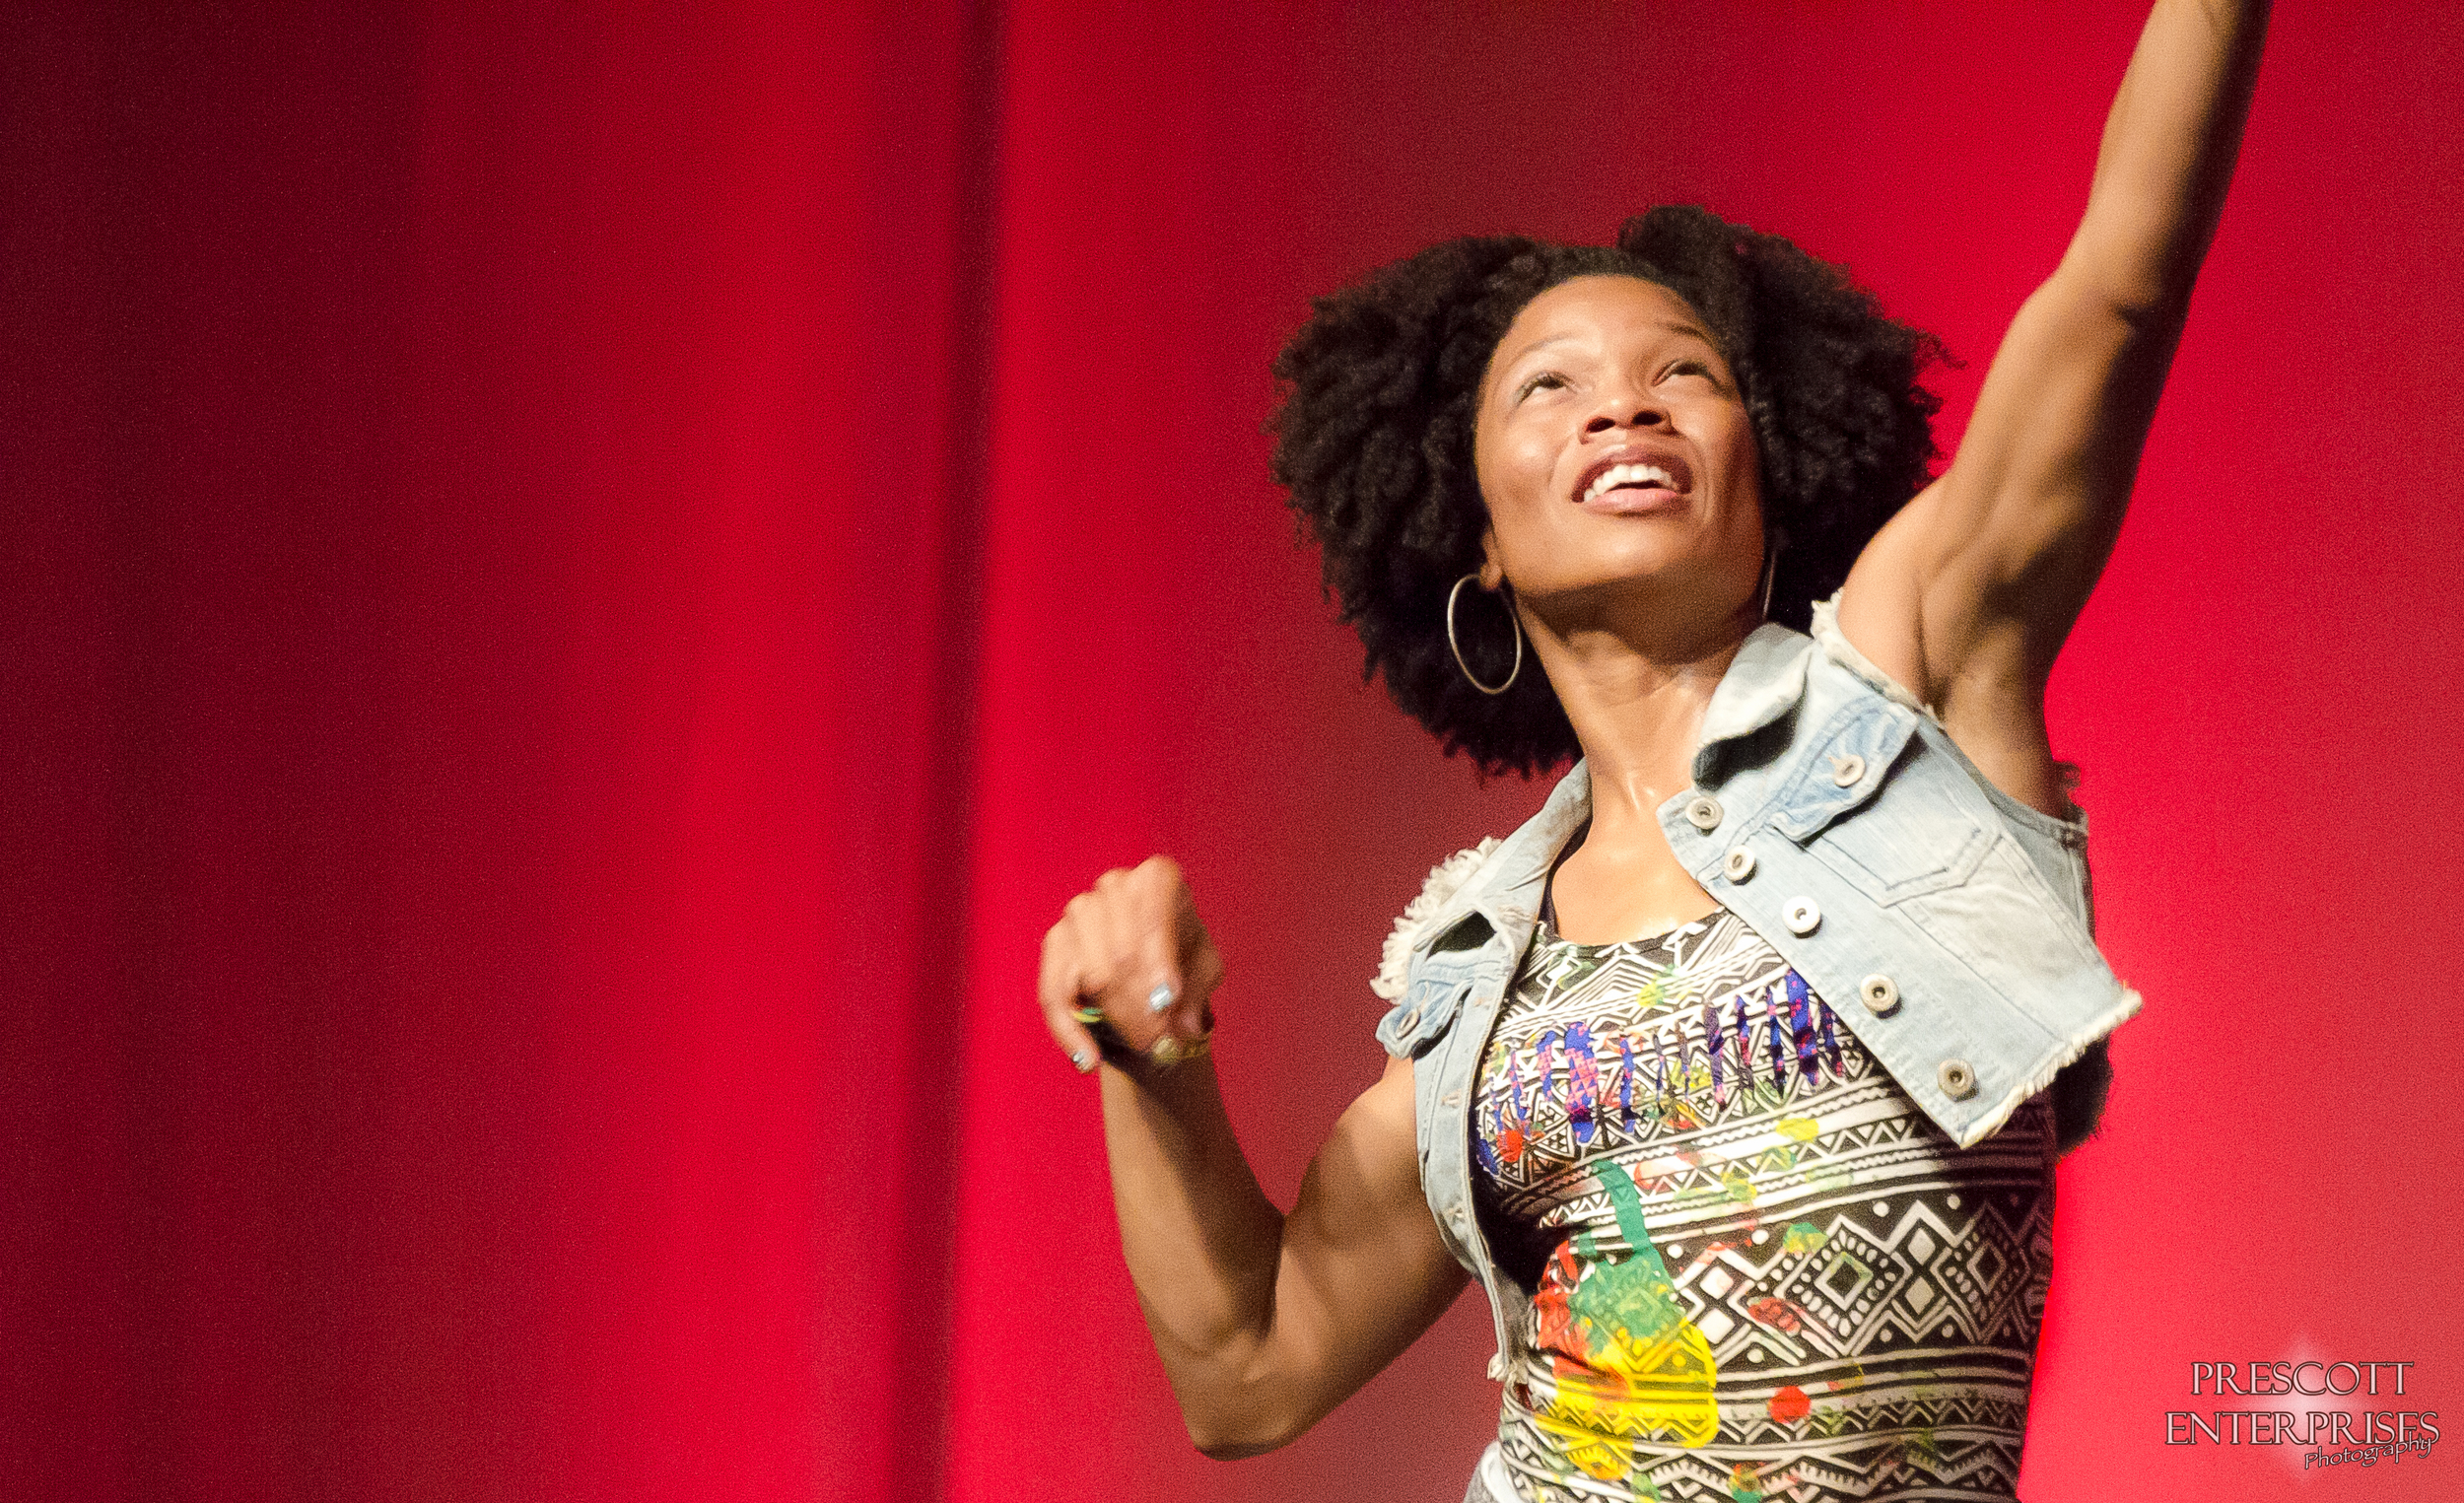 Zumba presenter Catherine Chiemelu exudes amazing energy and beauty and all with a natural look.